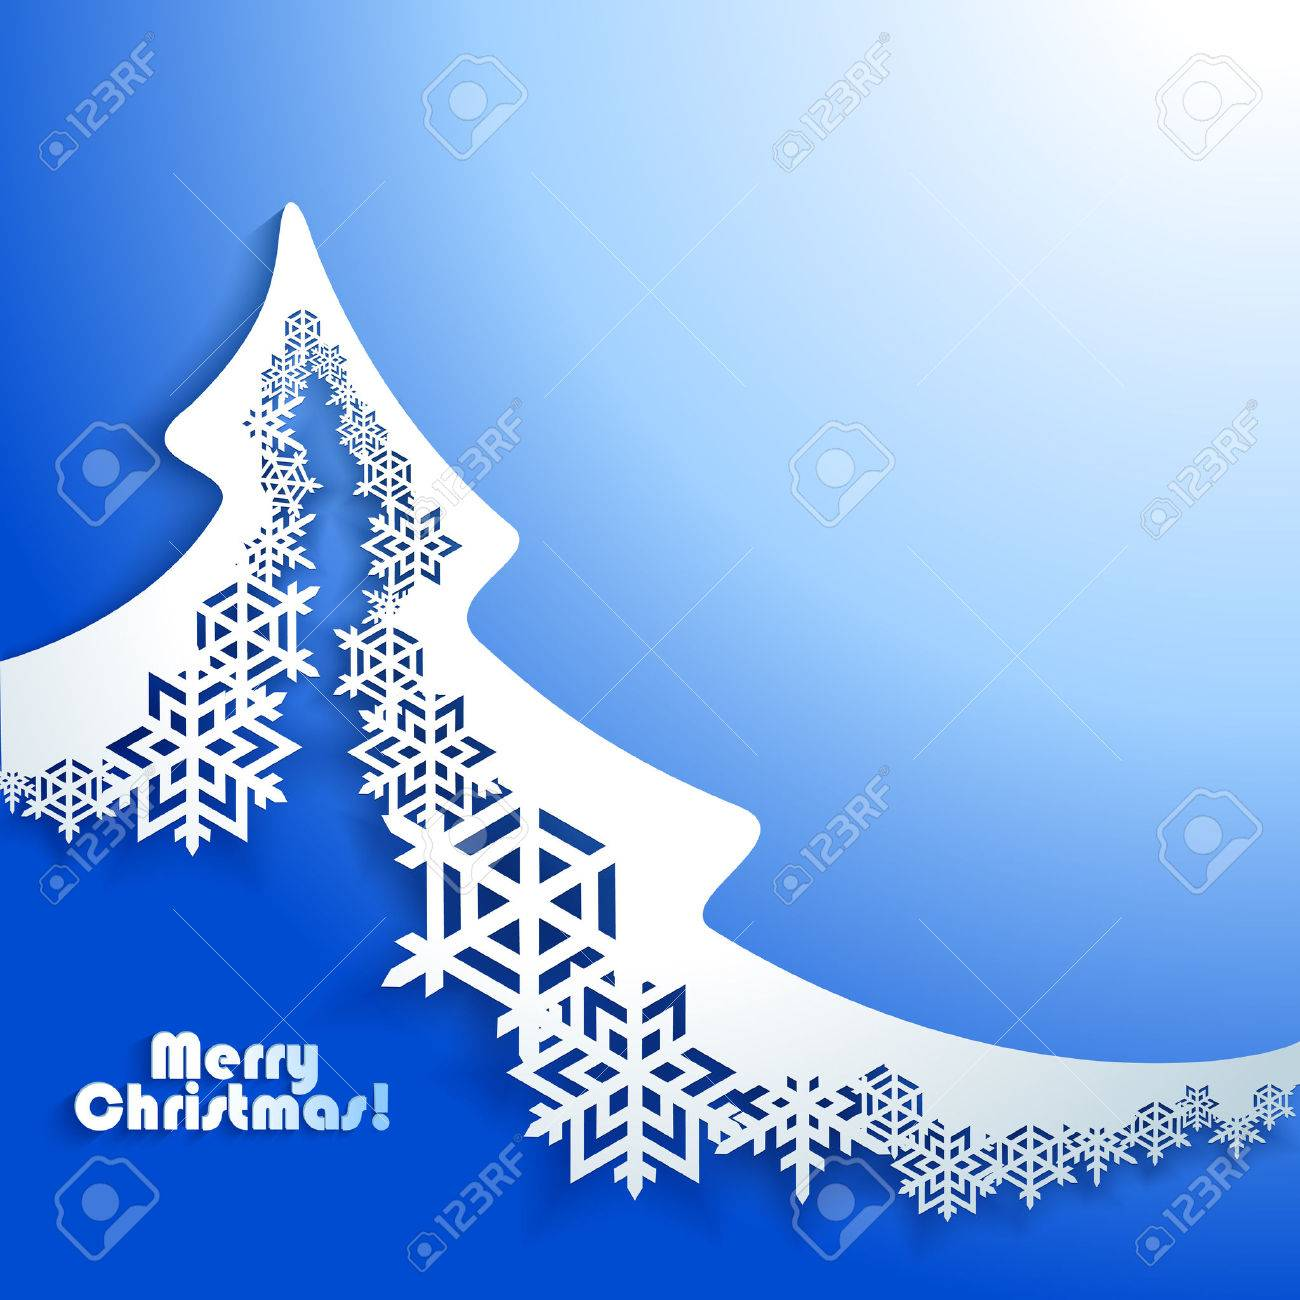 Abstract Christmas winter Background with paper christmas tree Stock Vector - 22599531